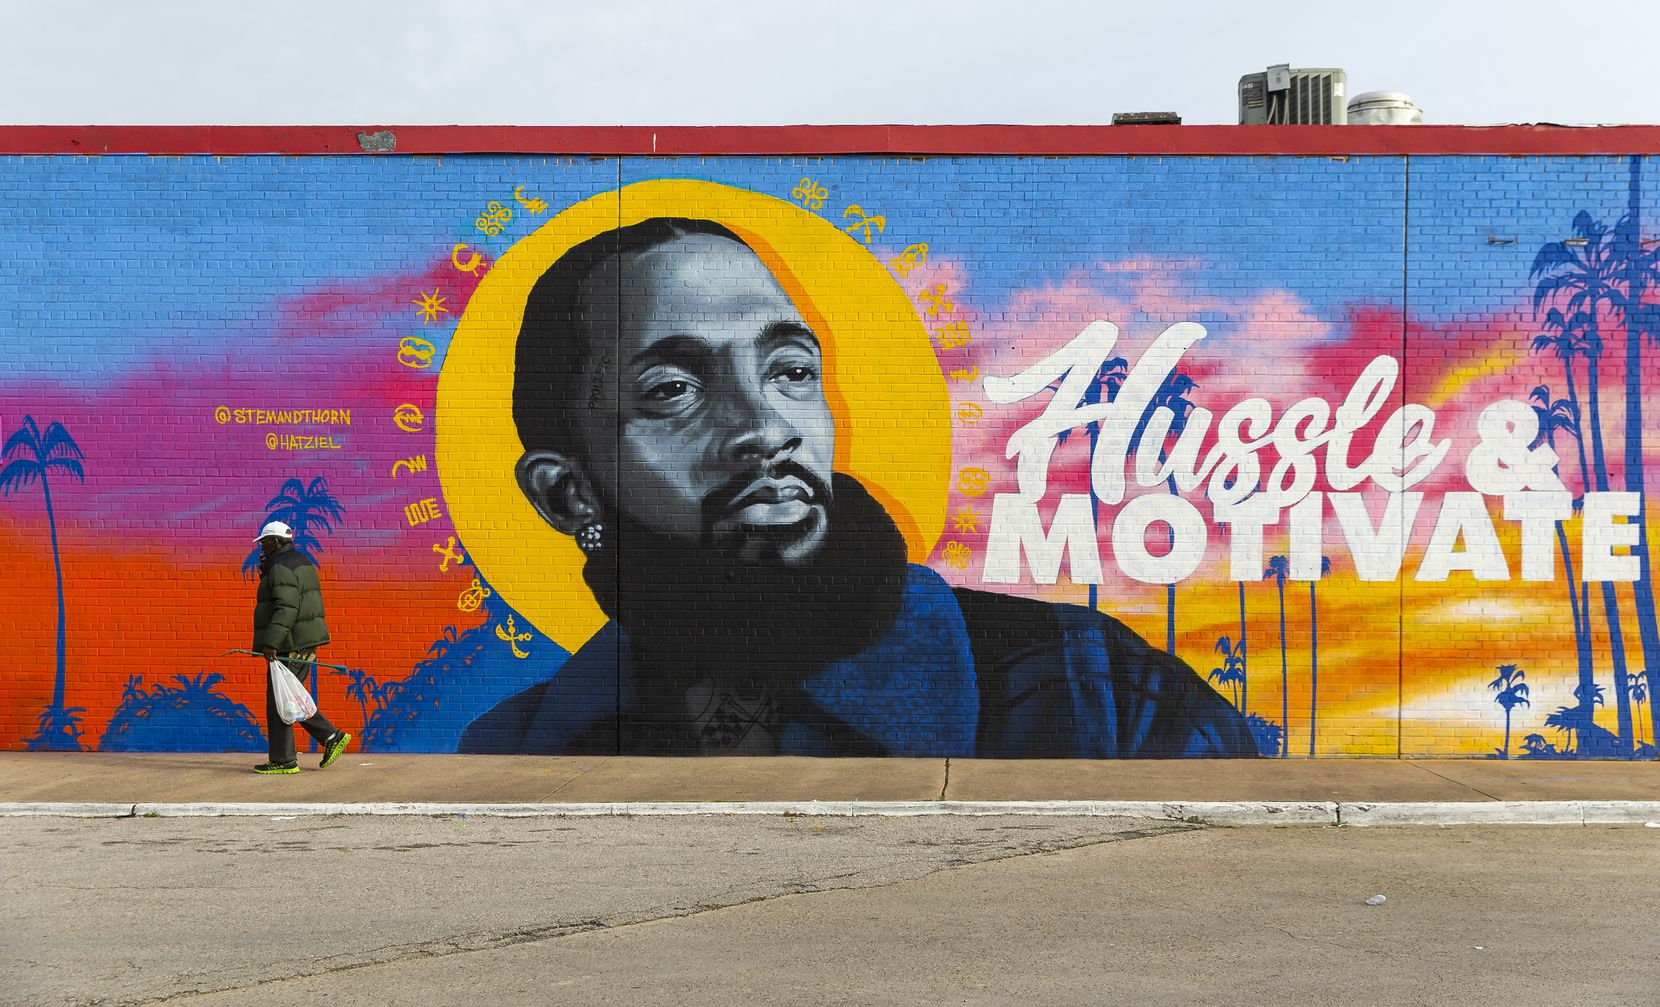 A mural dedicated to the late rapper, entrepreneur and community activist Nipsey Hussle by artists Jeremy Biggers and Hatziel Flores at the Glendale Shopping Center on Feb. 22, 2020 in Dallas. (Juan Figueroa/ The Dallas Morning News)